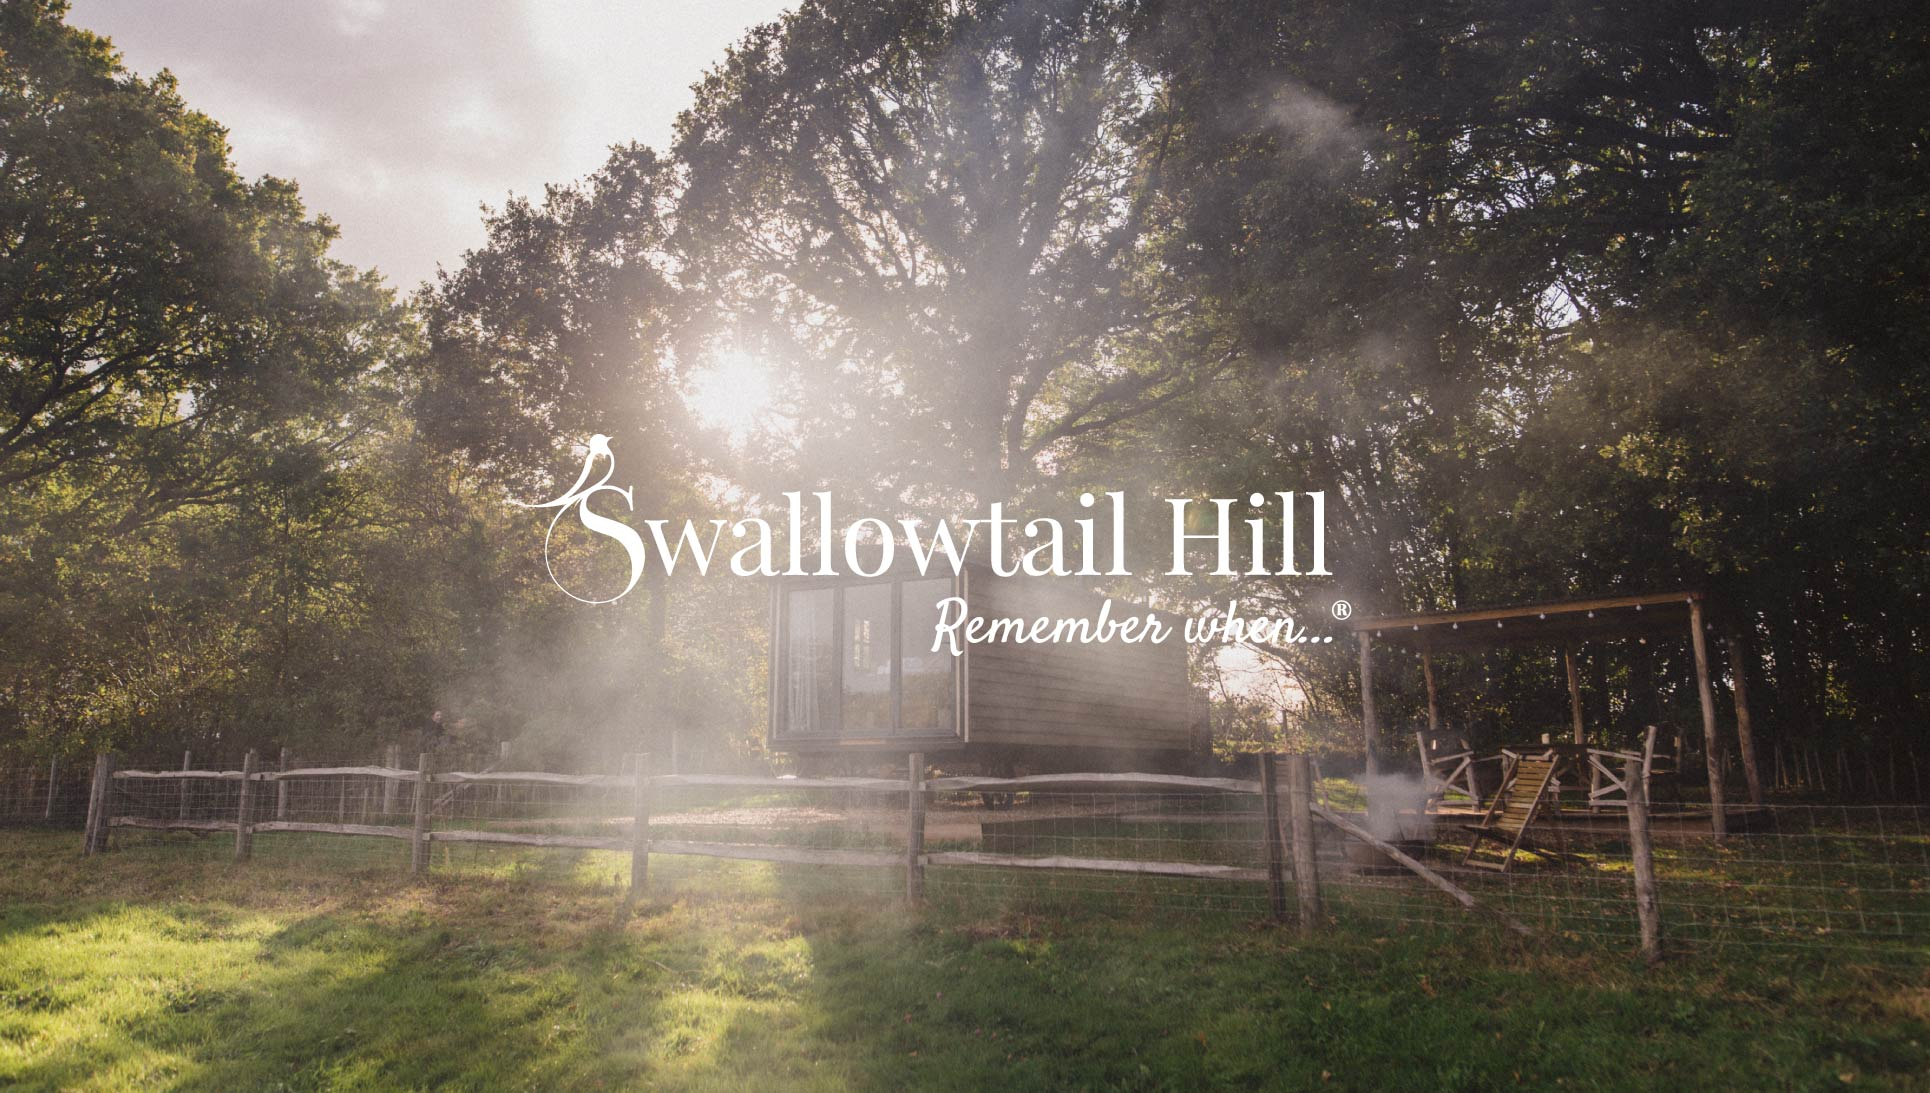 Swallowtail Hill accommodation and logo design.